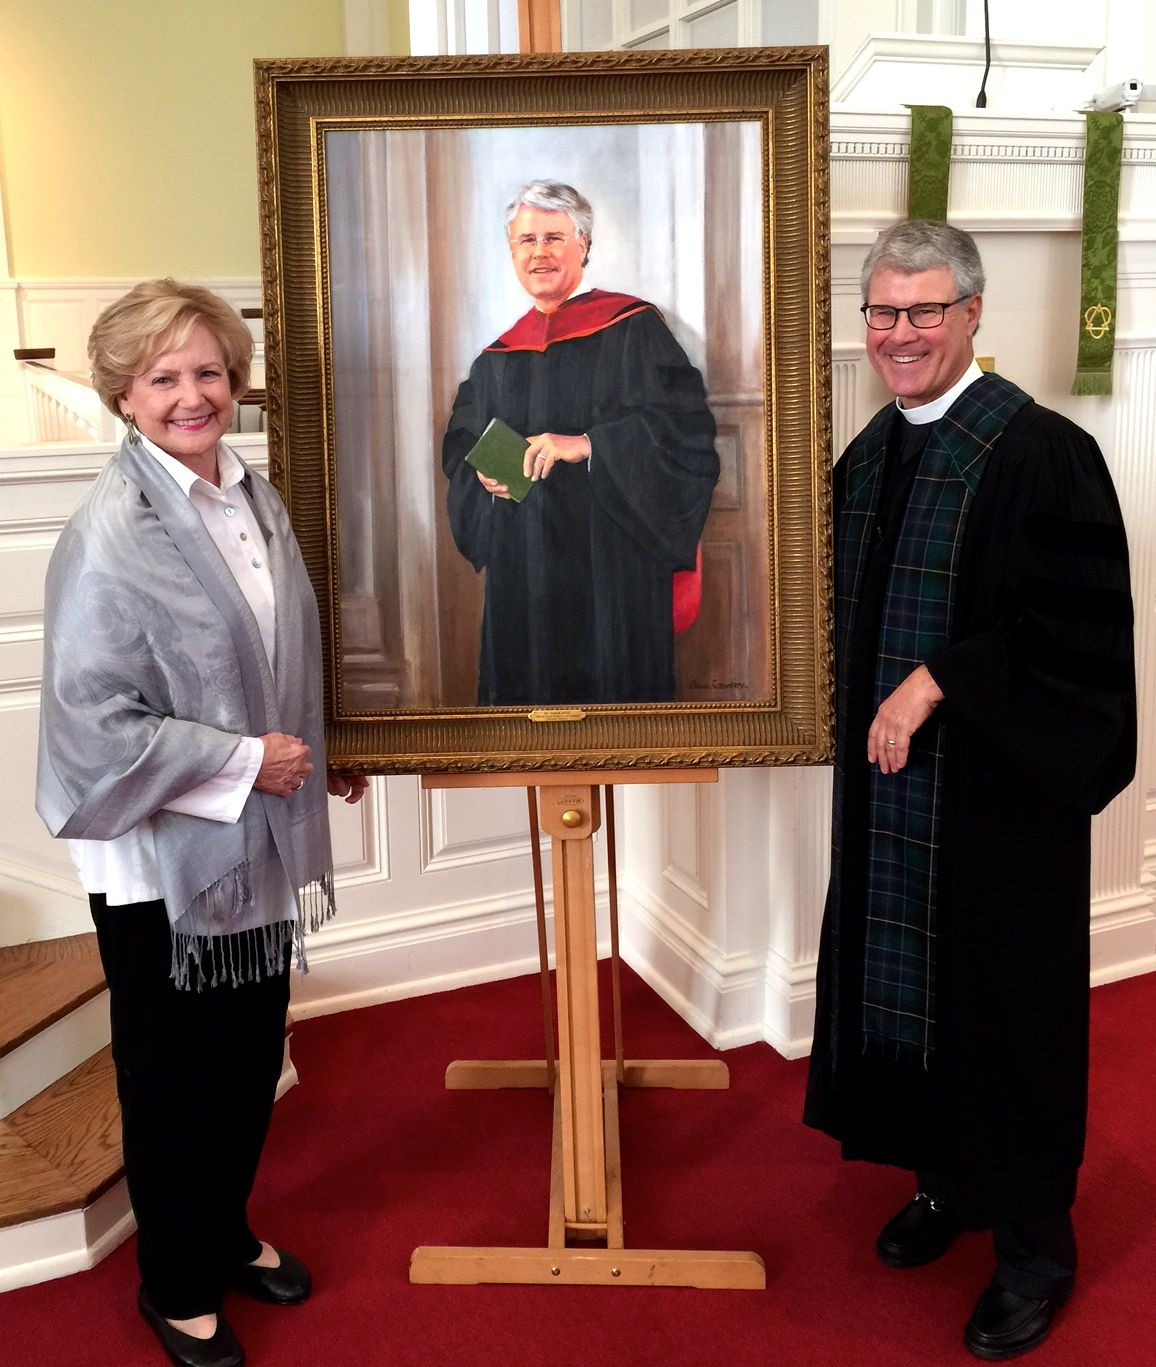 Portrait unveiling: Painter, Ann Cowden, with Pastor Todd Jones at First Presbyterian Church, Nashville, Tennessee, November of 2016